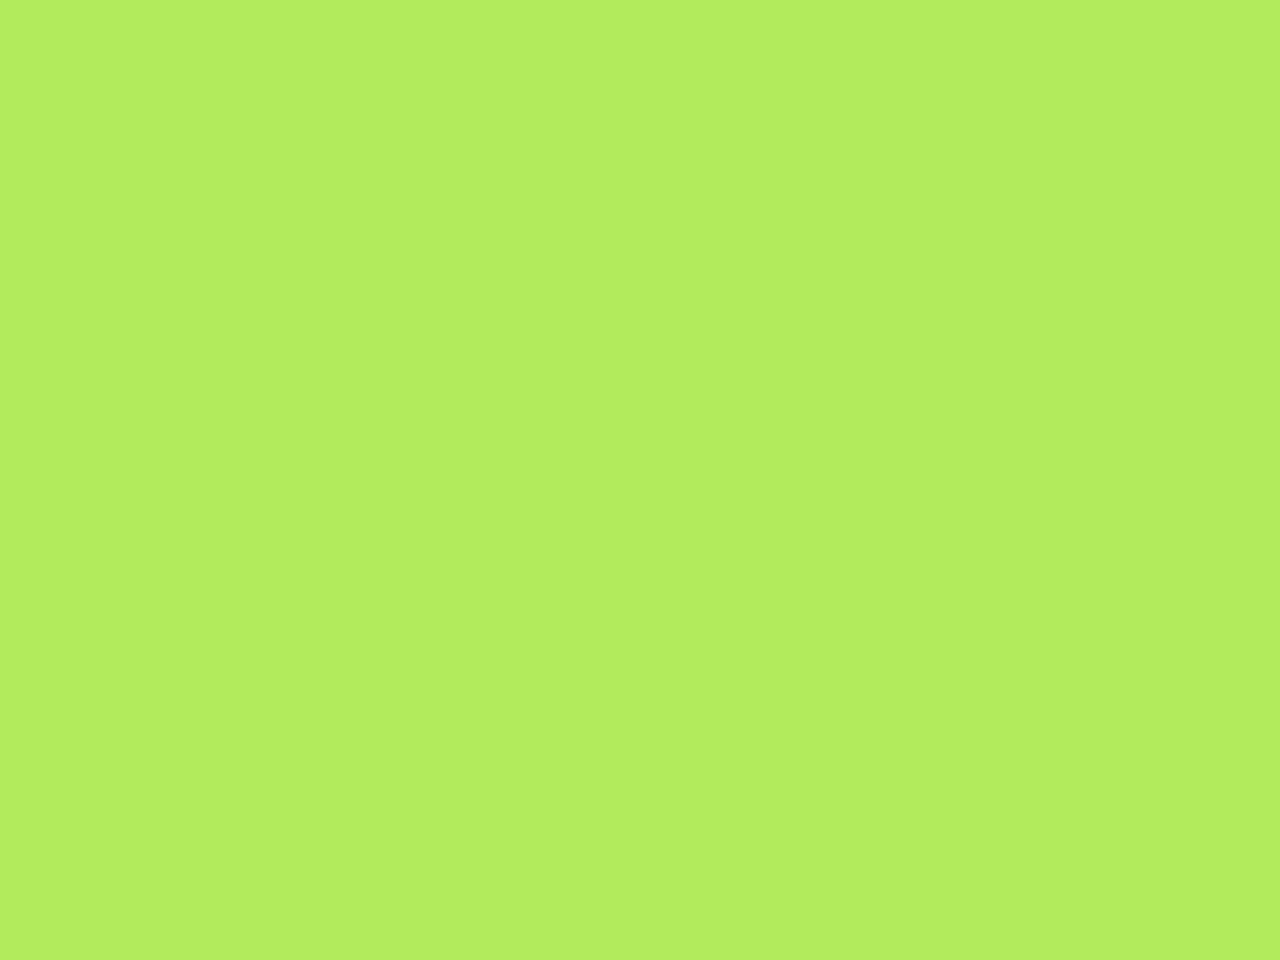 1280x960 Inchworm Solid Color Background